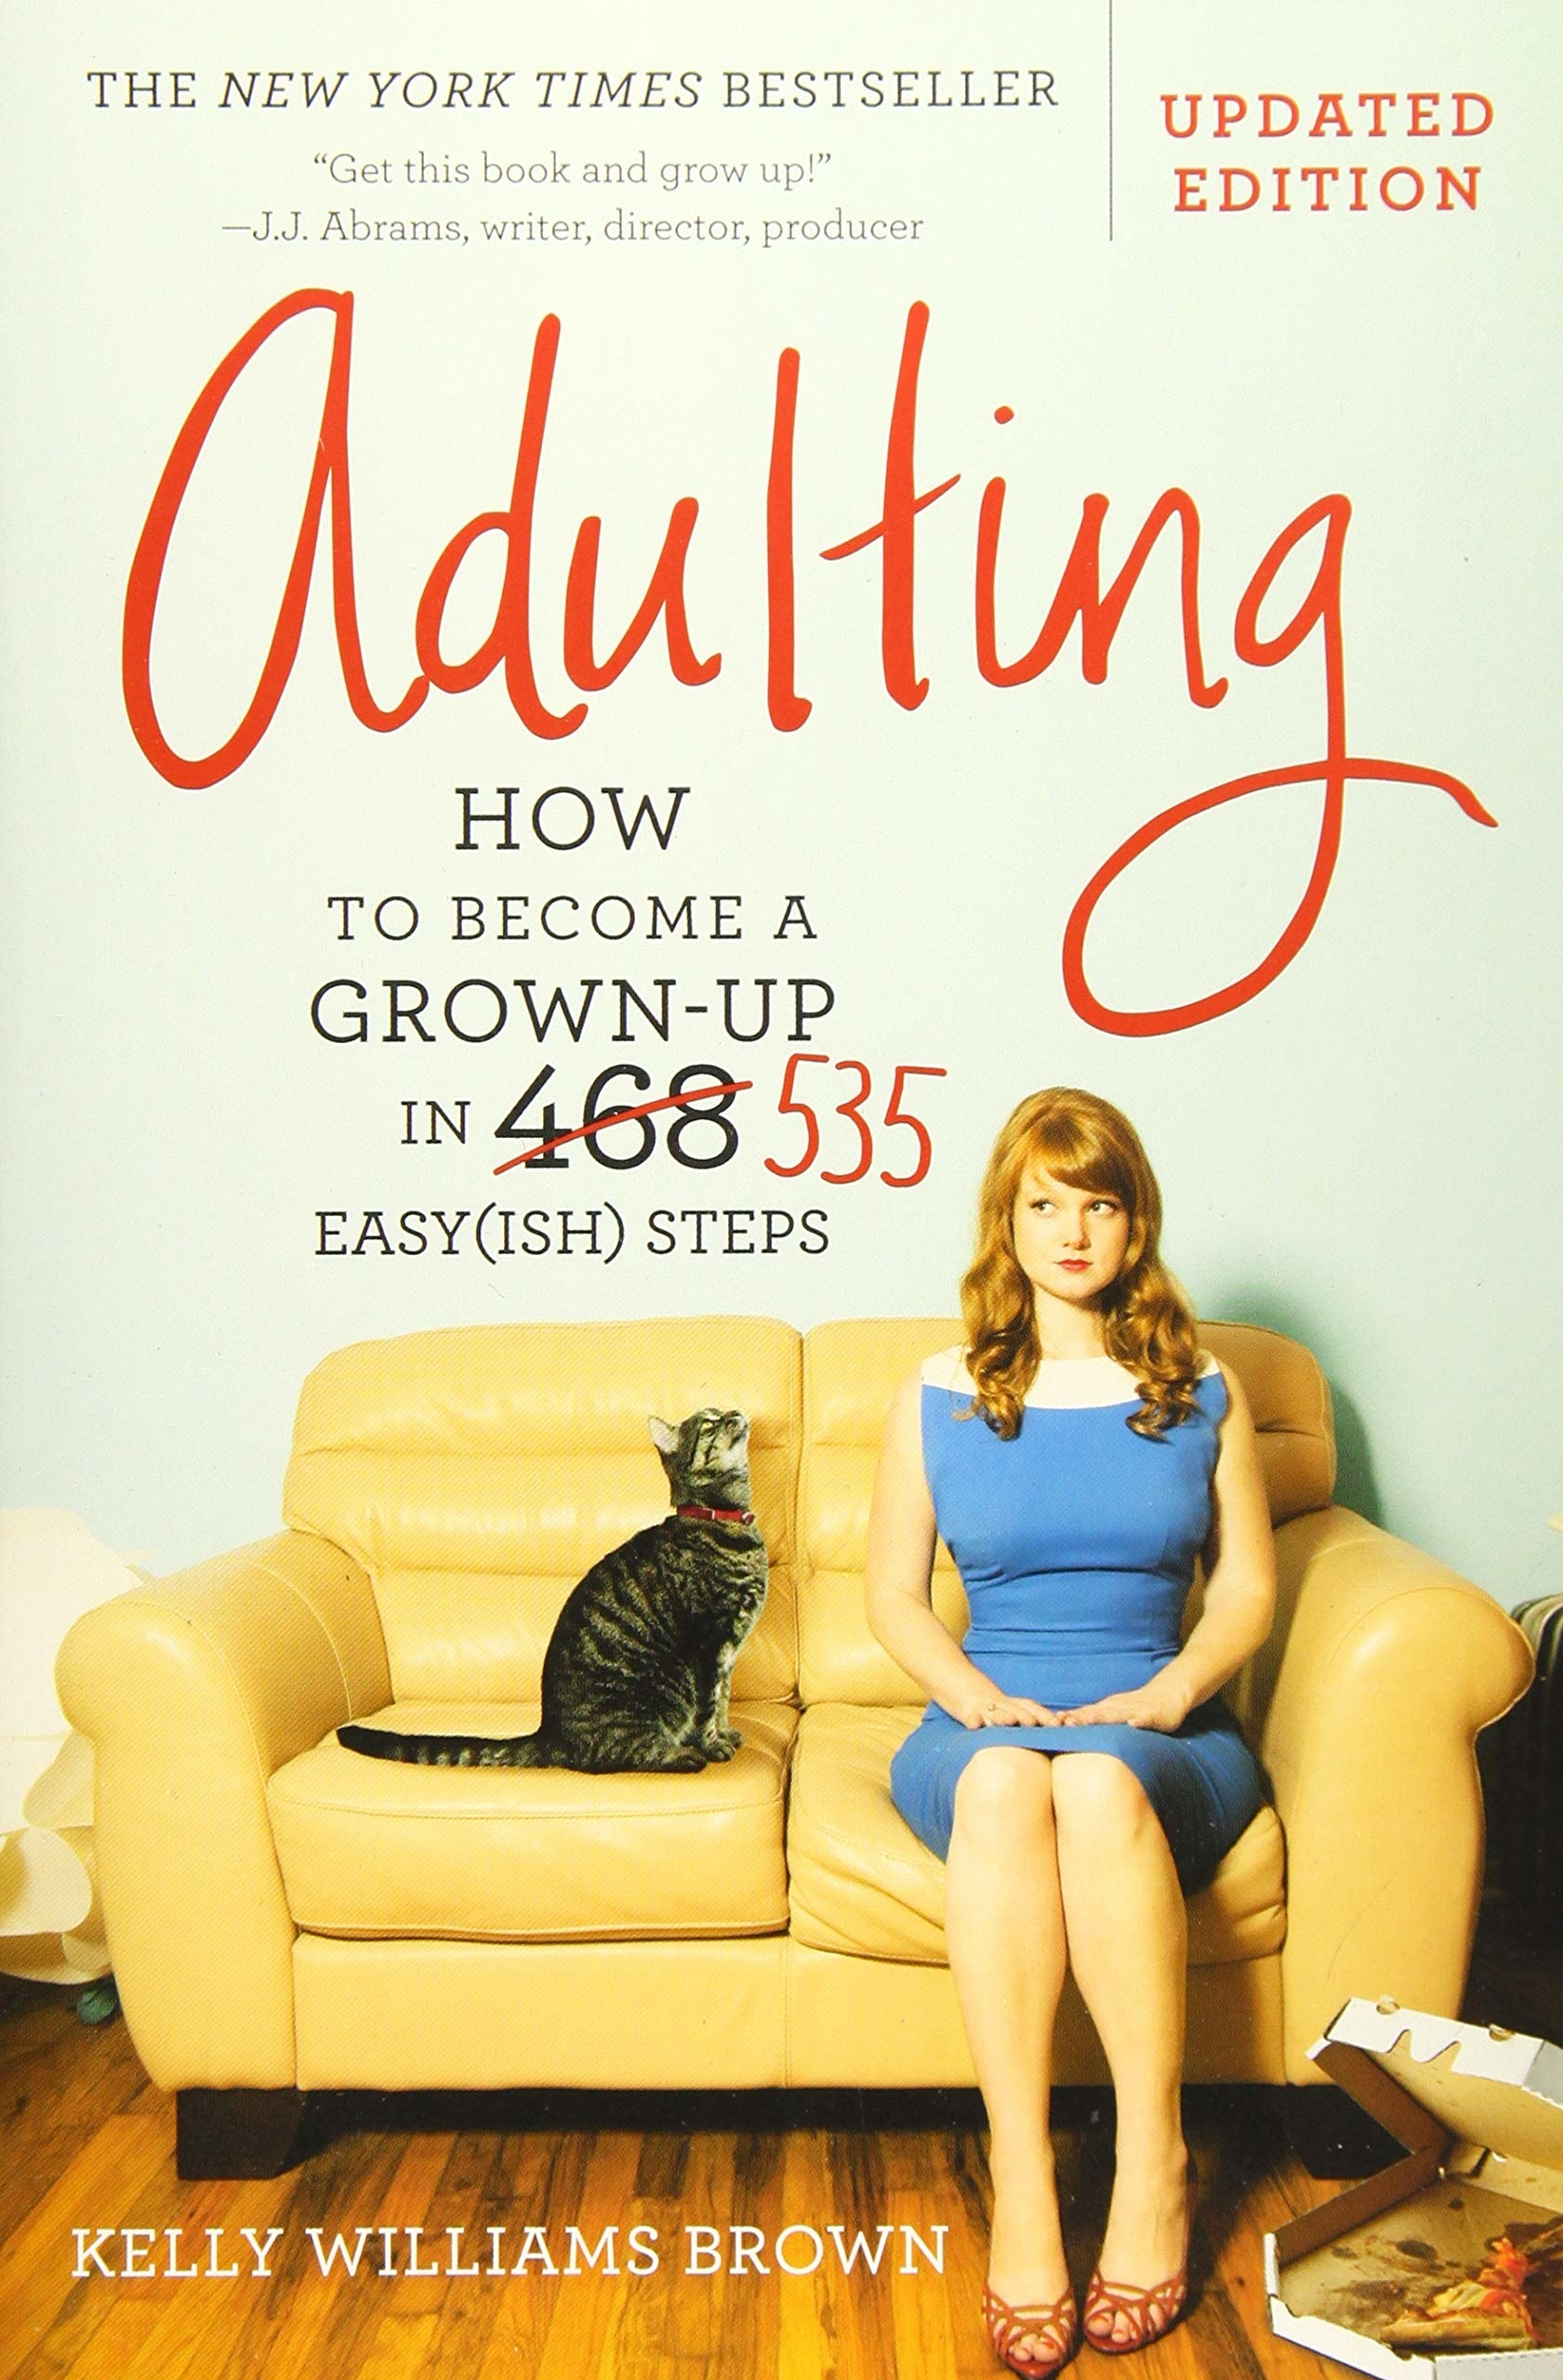 the cover of the book which shows a young woman and her cat sitting on a couch